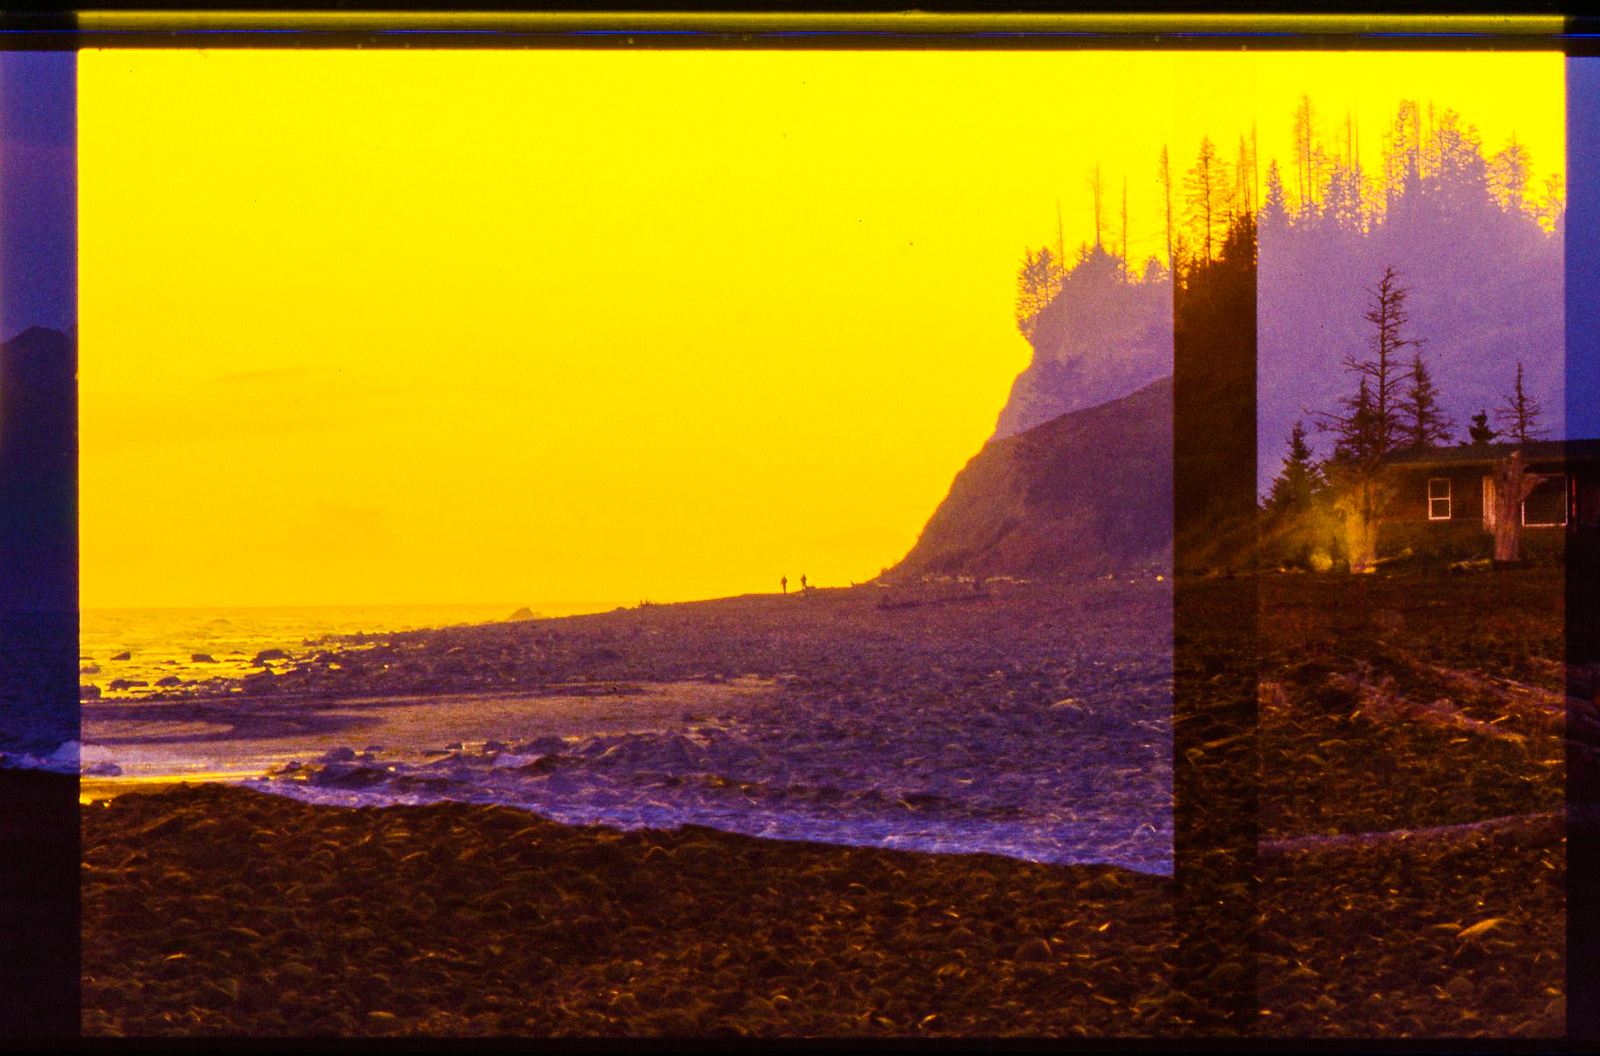 35mm double exposure in Homer, Alaska July 2009©MegSeidel